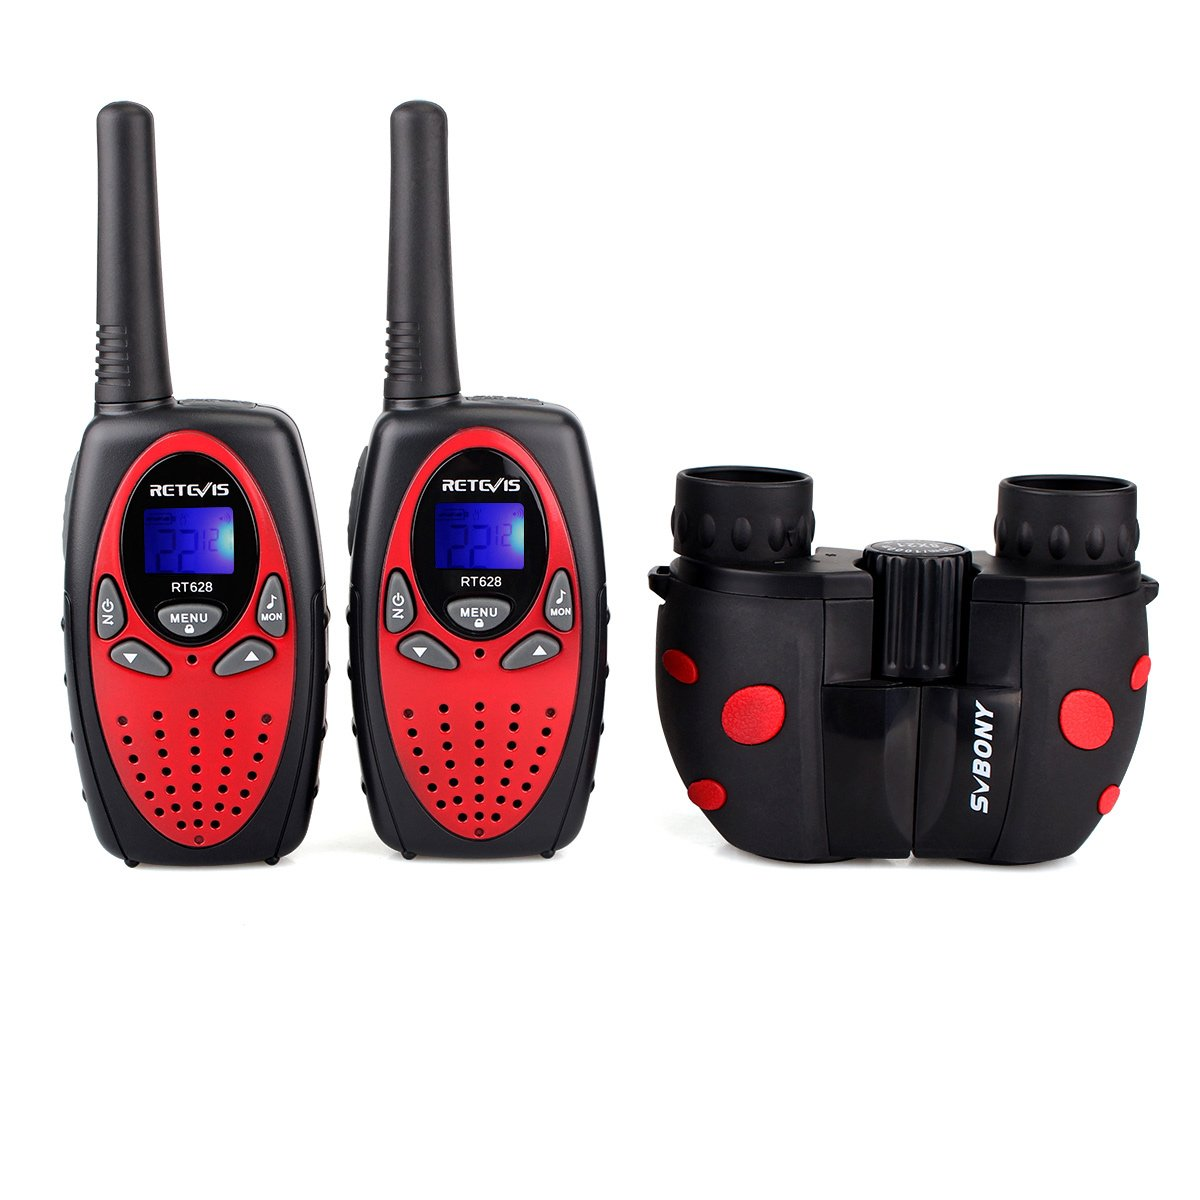 Retevis RT628 Kids Walkie Talkies 22 CH FRS (2 Pack) and Kids Binocular for Outdoor Play Toy Walkie Talkies for Boys and Girls(1 Pack) by Retevis (Image #3)